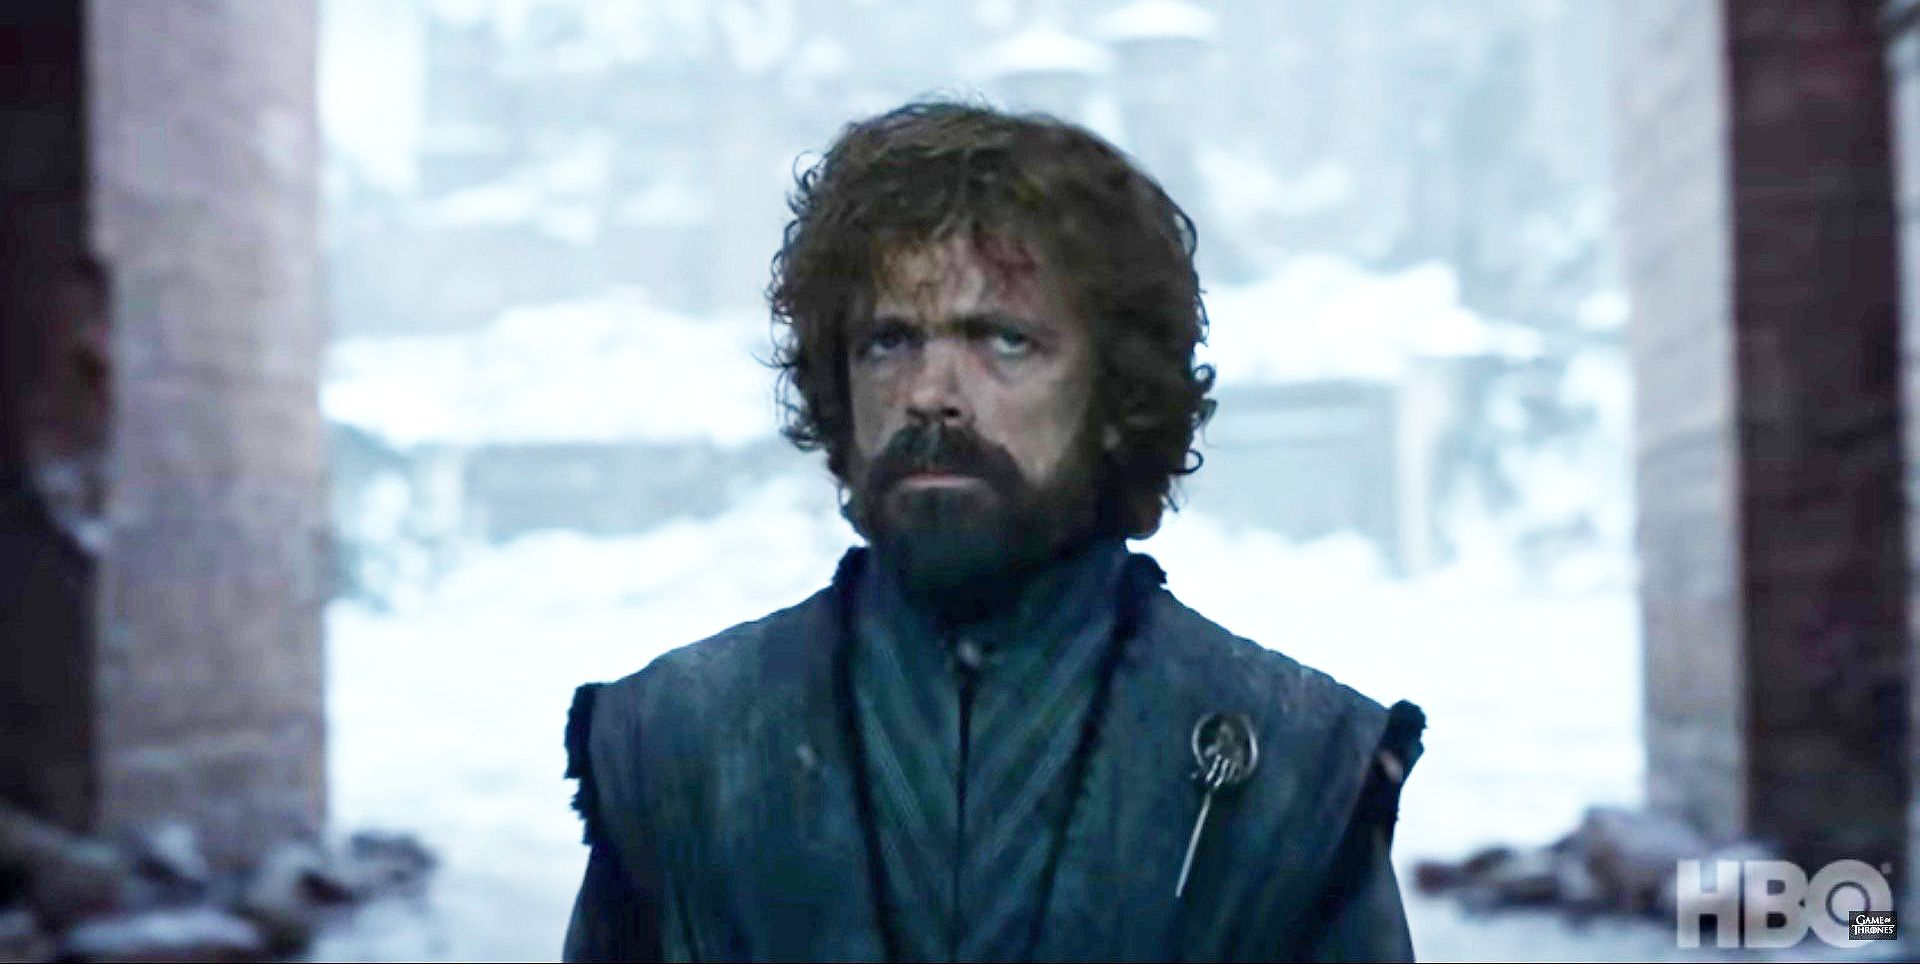 Tyrion Lannister, Game of Thrones episode 6 trailer